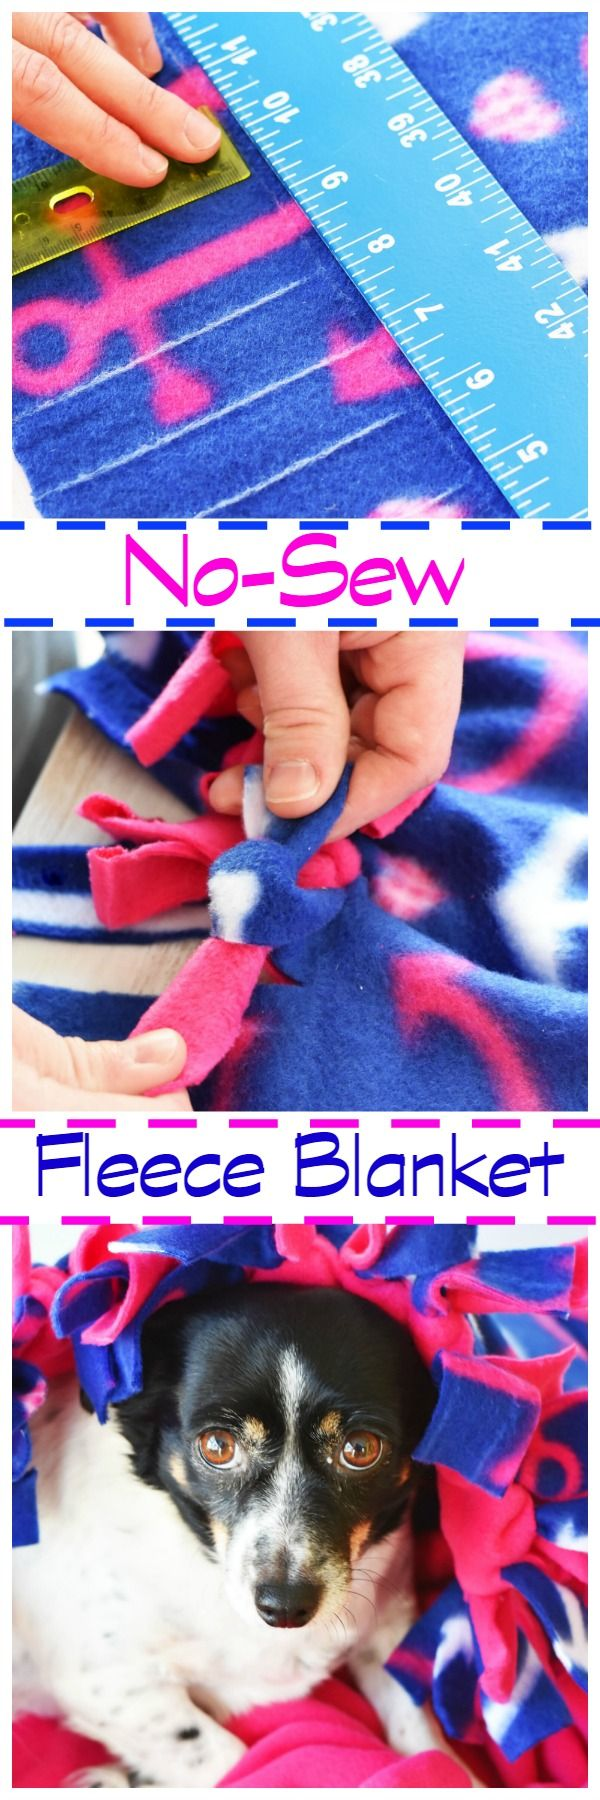 No-Sew Fleece Blanket is perfect for Pets and Kids. No glue, or thread needed for this blanket DIY. AD via @savvysavingcoup